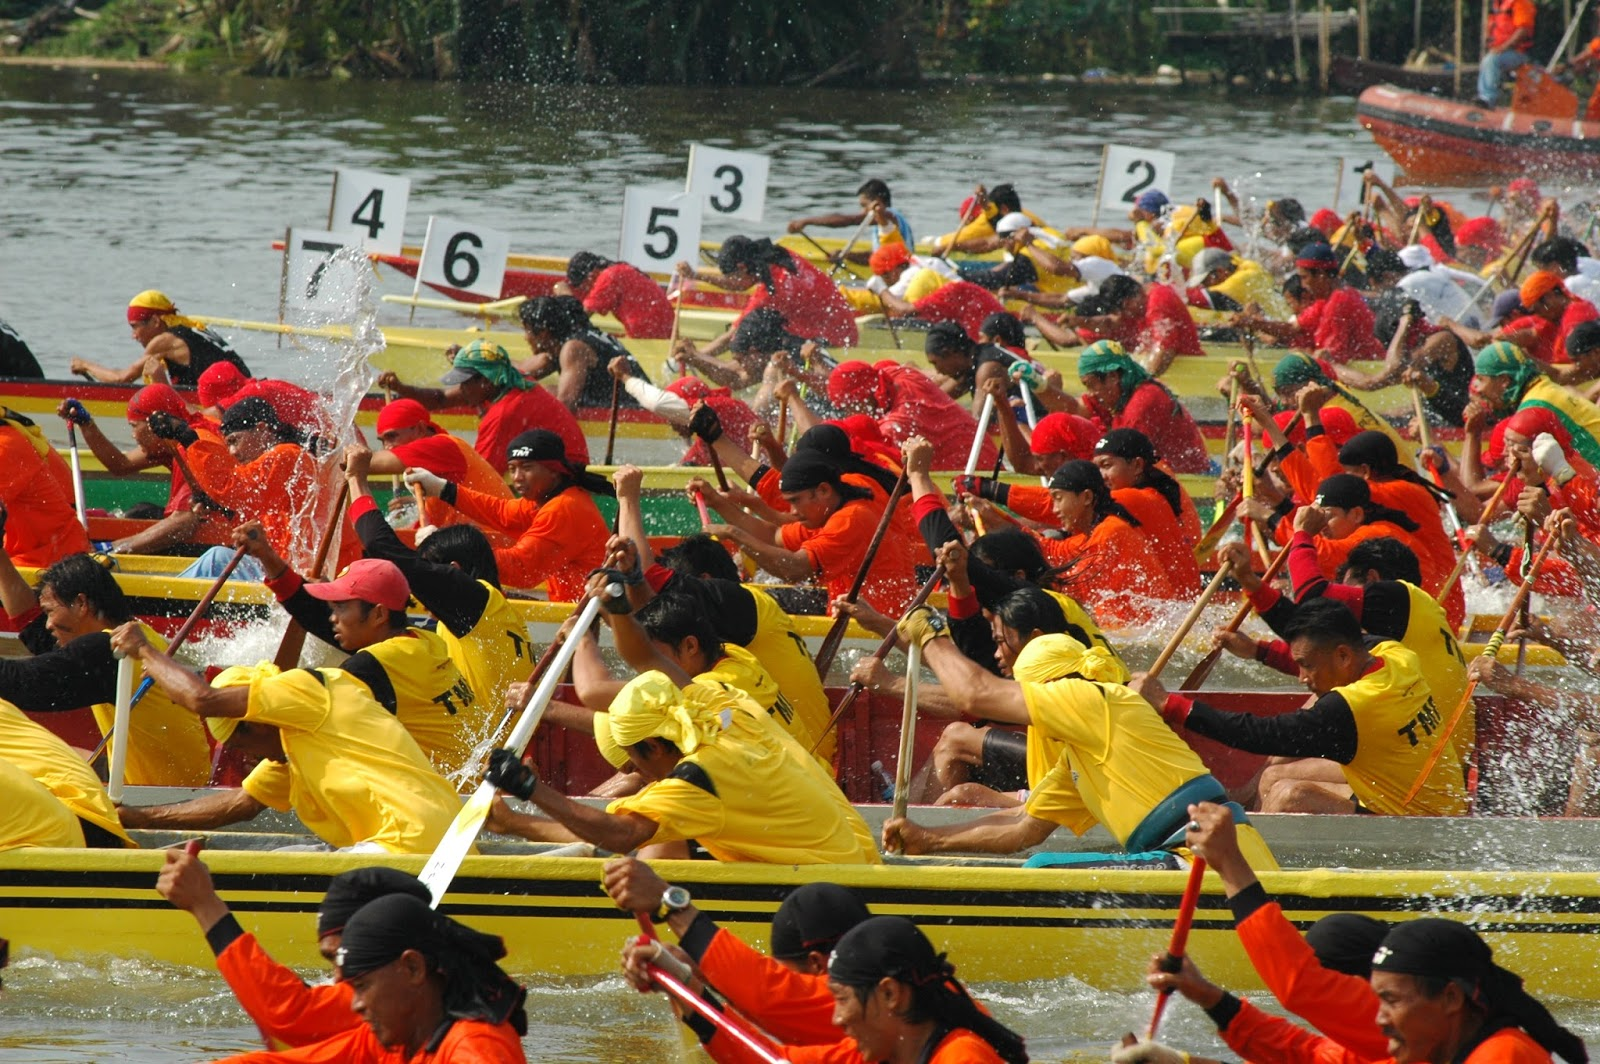 sarawak regatta The sarawak regatta – kuching waterfront festival 2018 will be held from oct  26 to nov 4, 2018 at kuching waterfront this annual event is the showcase of.